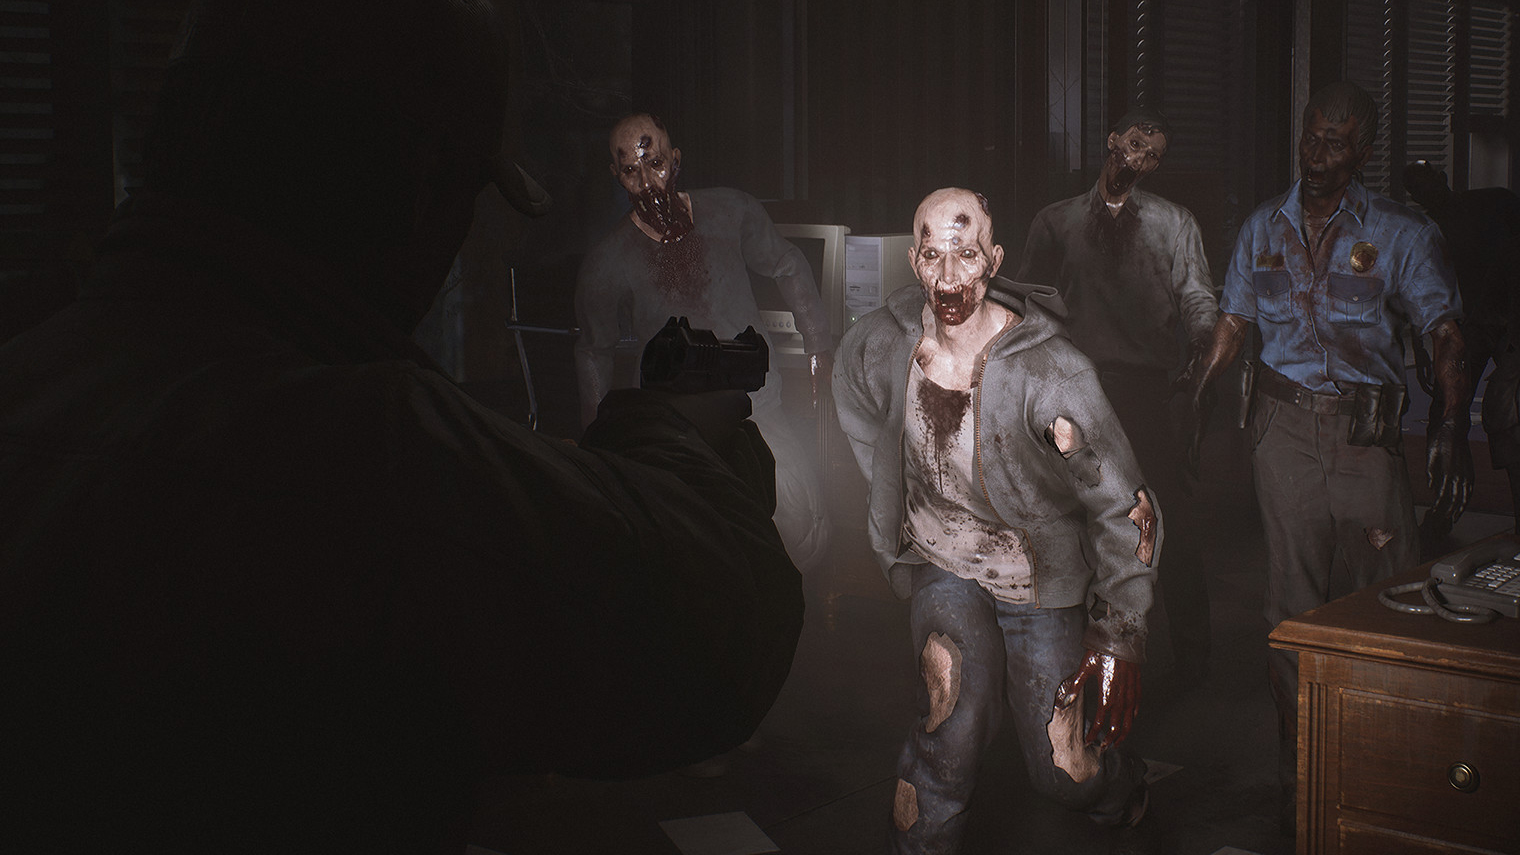 The Day Before gameplay trailer shows 10 minutes of zombie shooting and farmhouse looting